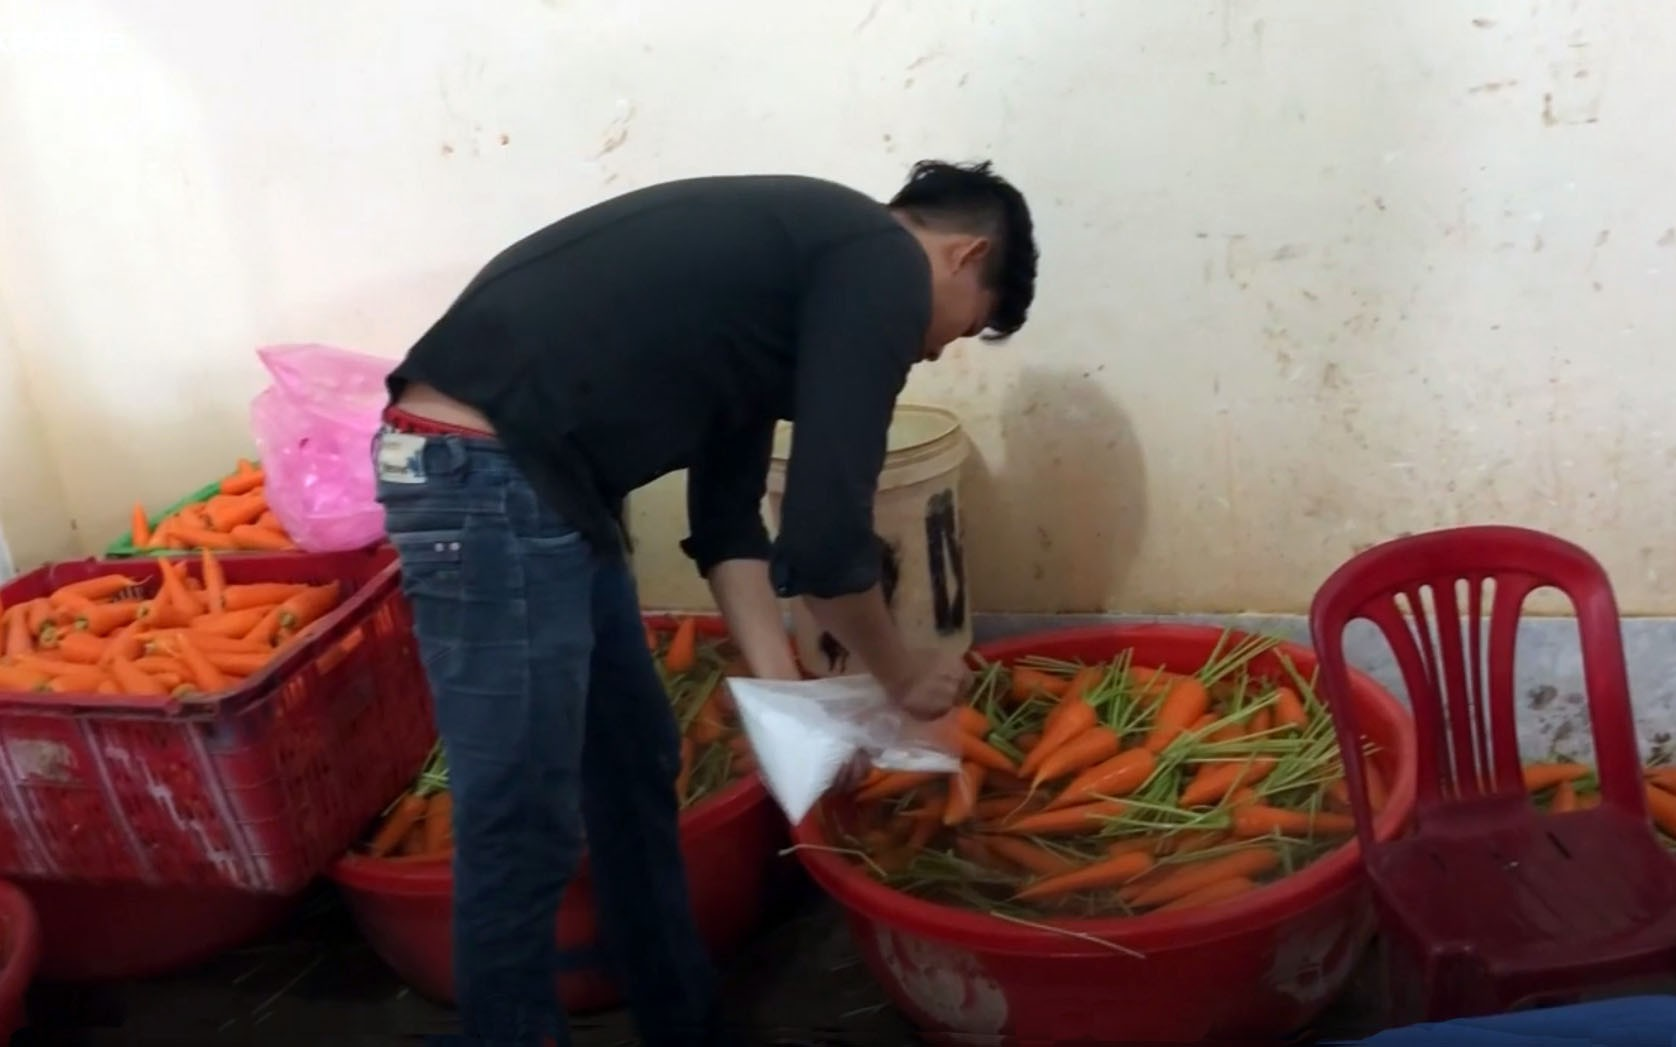 Sang soaks carrots in chemicals at his facility in Thu Duc District during a crime scene reconstruction. Photo: Nhan Hau / Tuoi Tre